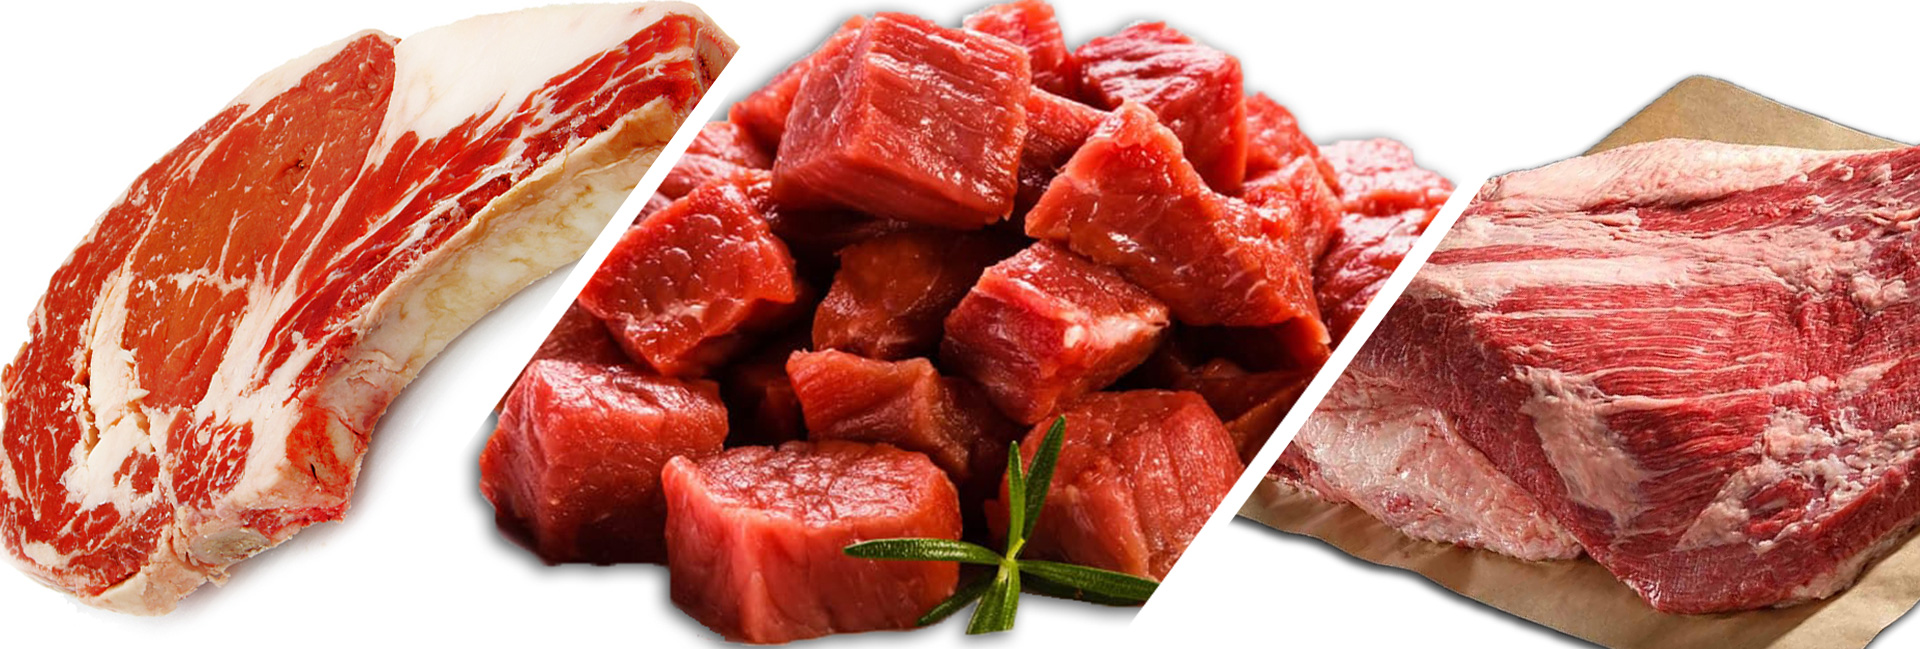 Fresh meat, poultry and fish